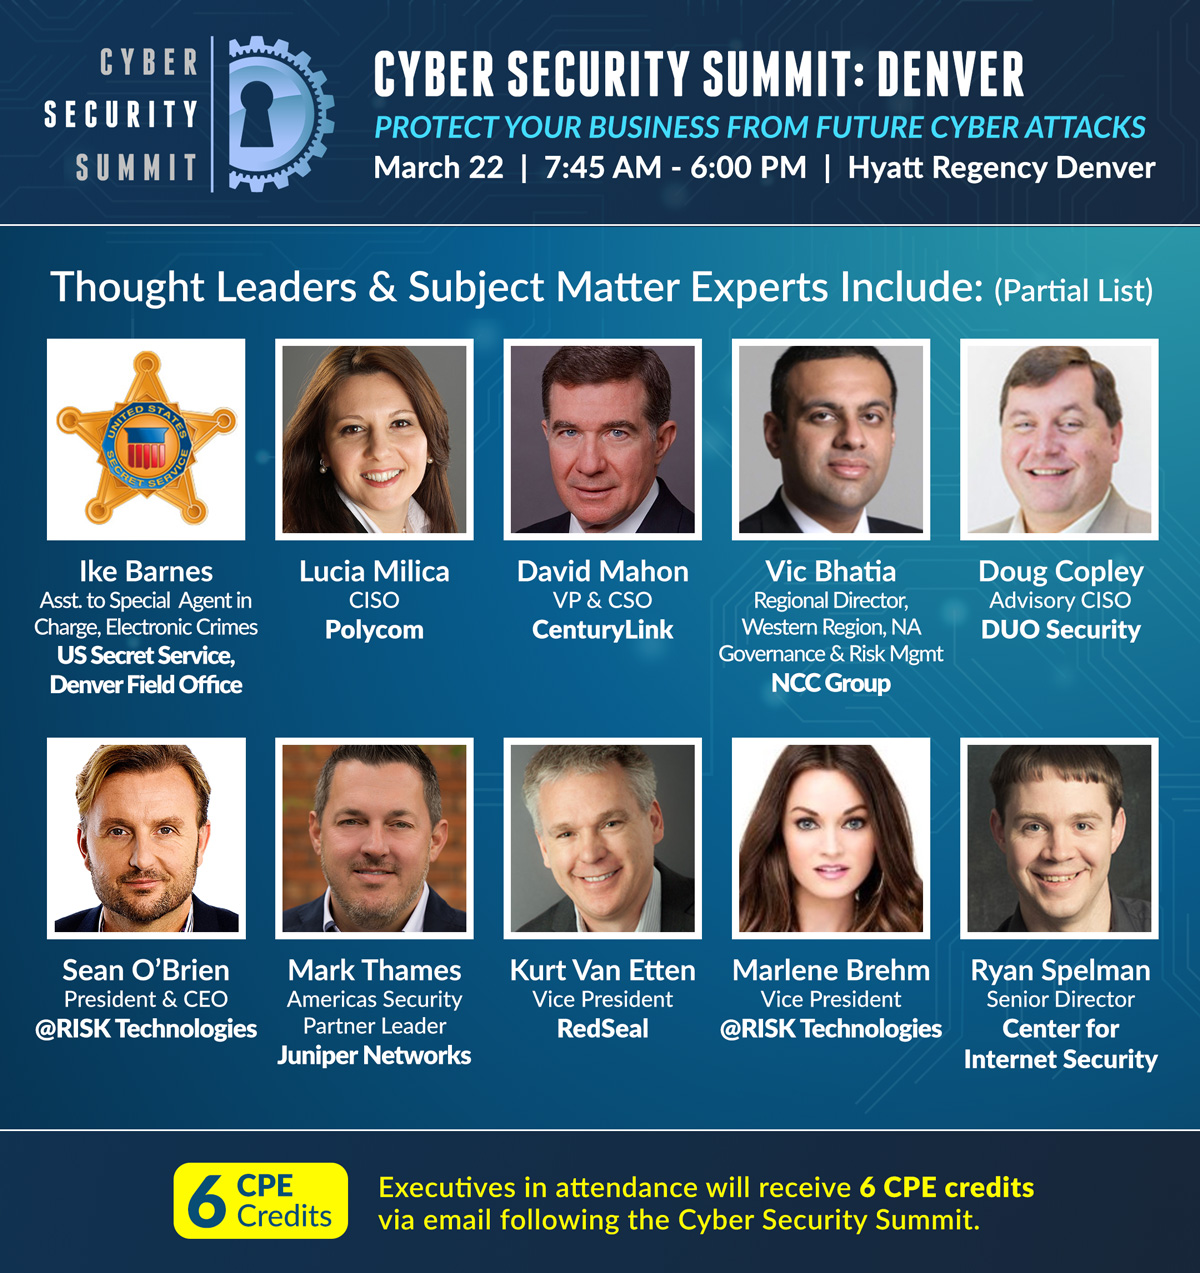 Protect Your Company From Cyber Attacks with the Cyber Security Summit